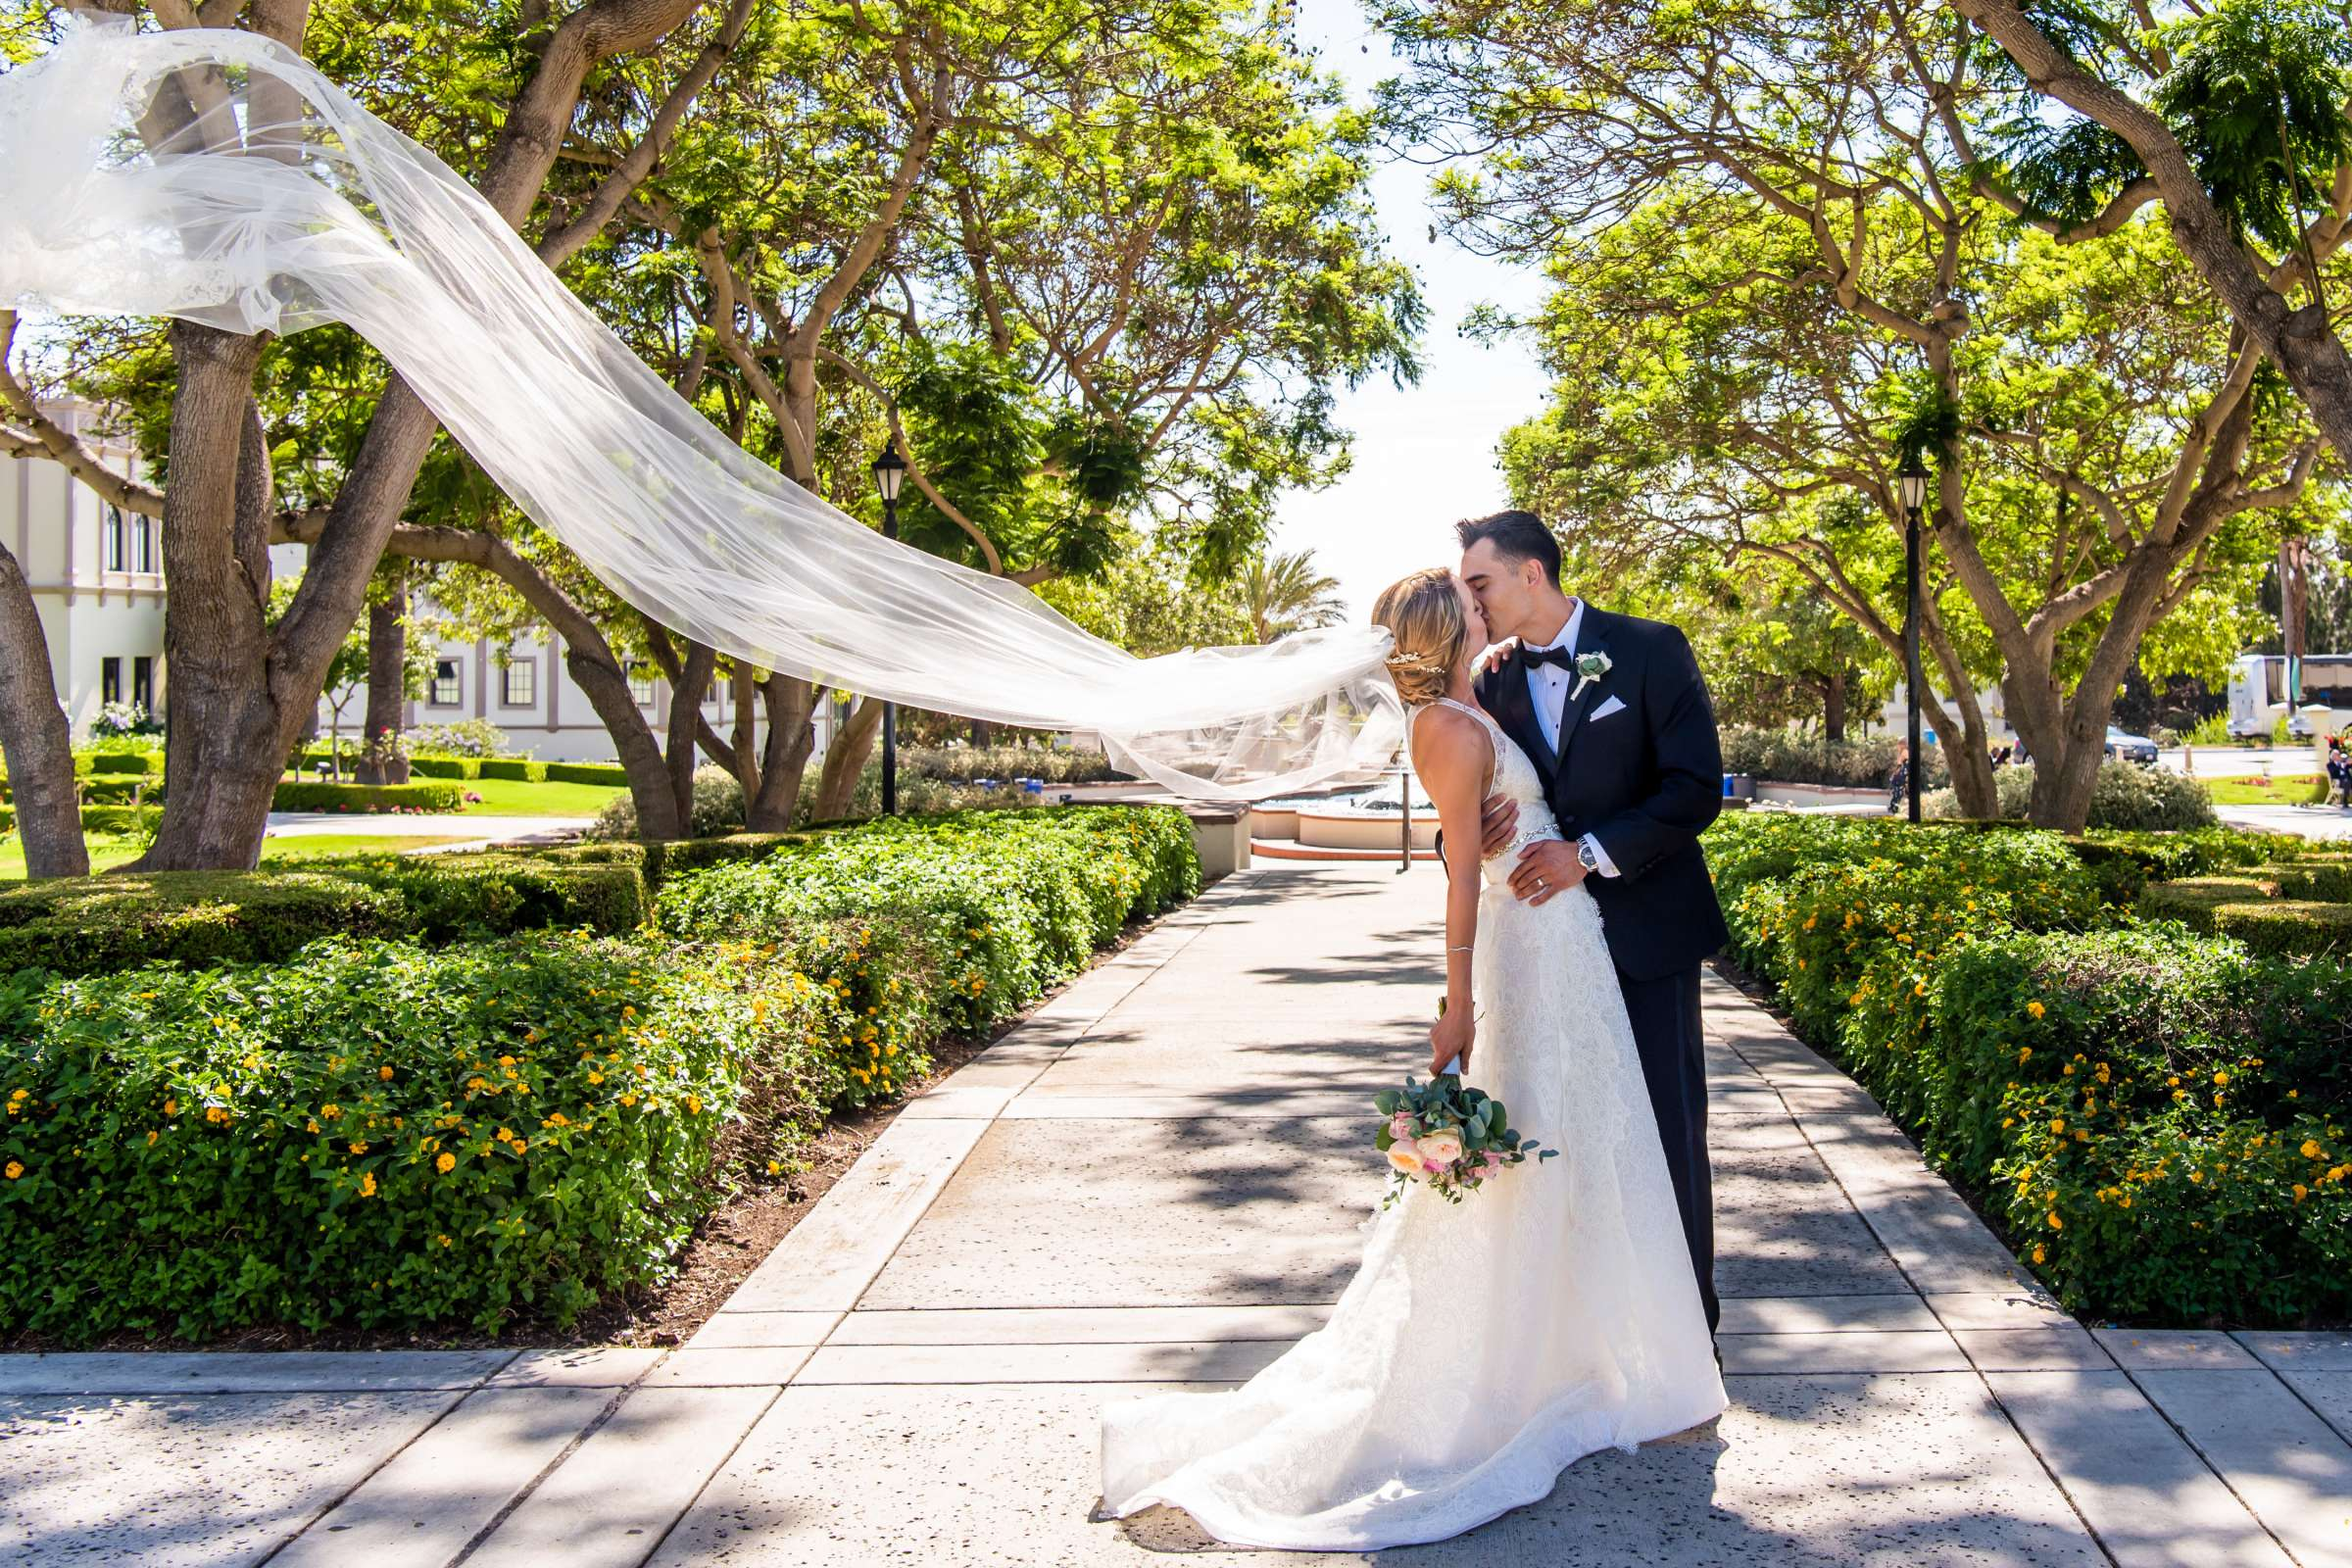 The Prado Wedding coordinated by Bliss Events, Sara and Marvin Wedding Photo #559560 by True Photography